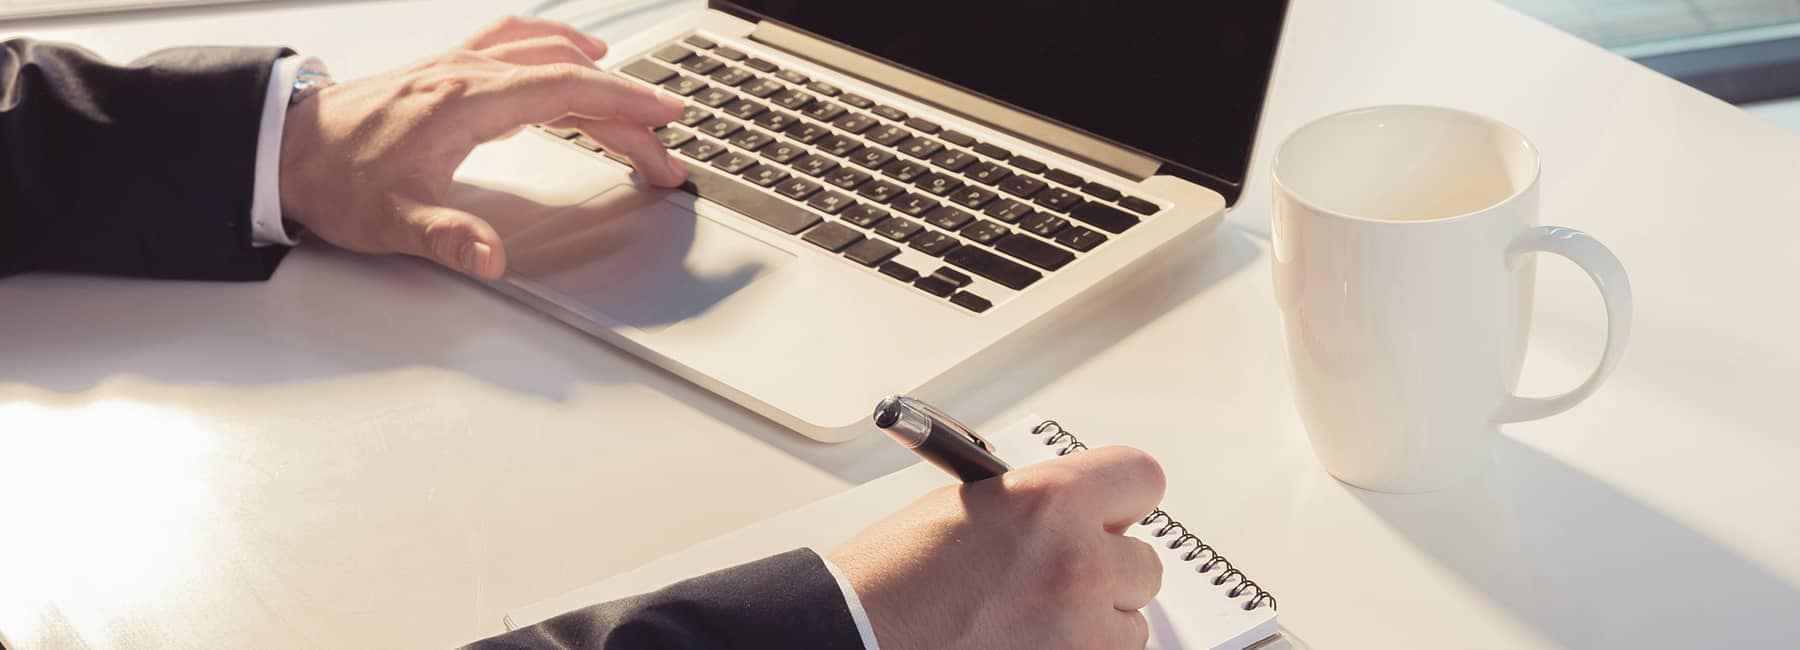 man calculating his finances with his laptop